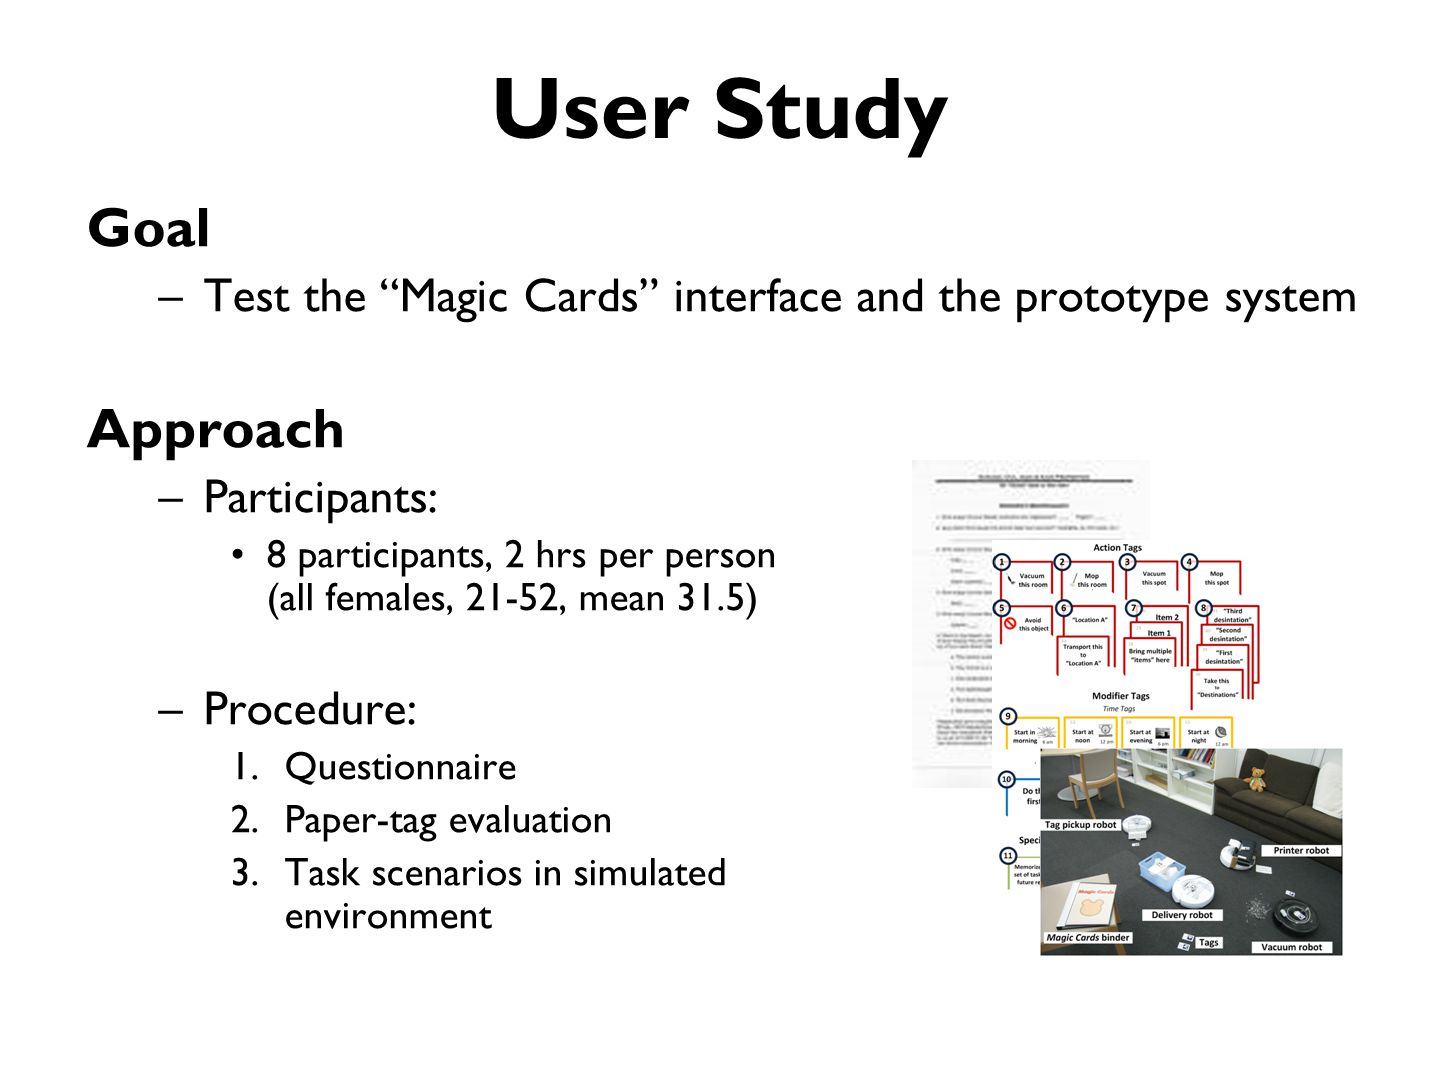 User Study Goal –Test the Magic Cards interface and the prototype system Approach –Participants: 8 participants, 2 hrs per person (all females, 21-52, mean 31.5) –Procedure: 1.Questionnaire 2.Paper-tag evaluation 3.Task scenarios in simulated environment